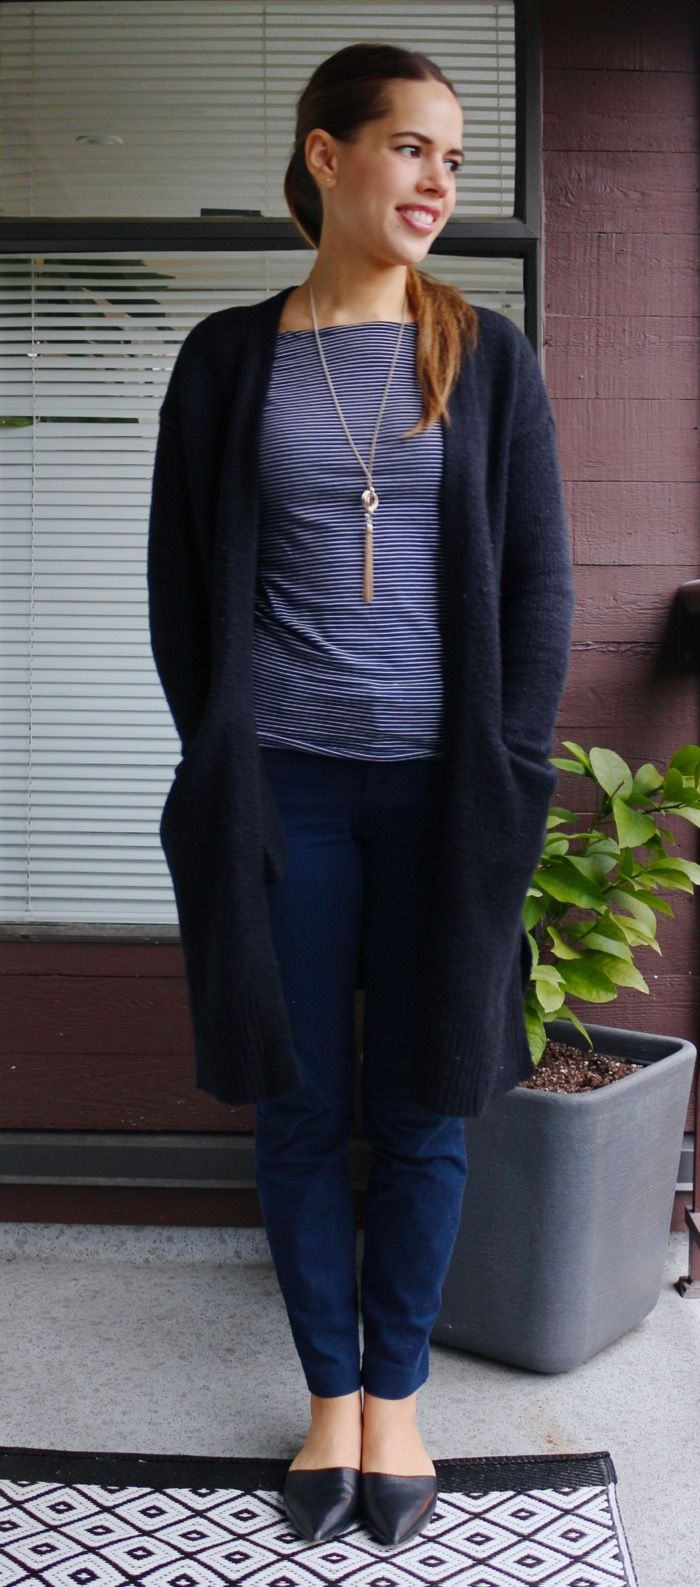 Jules in Flats - Cozy January Work Outfit